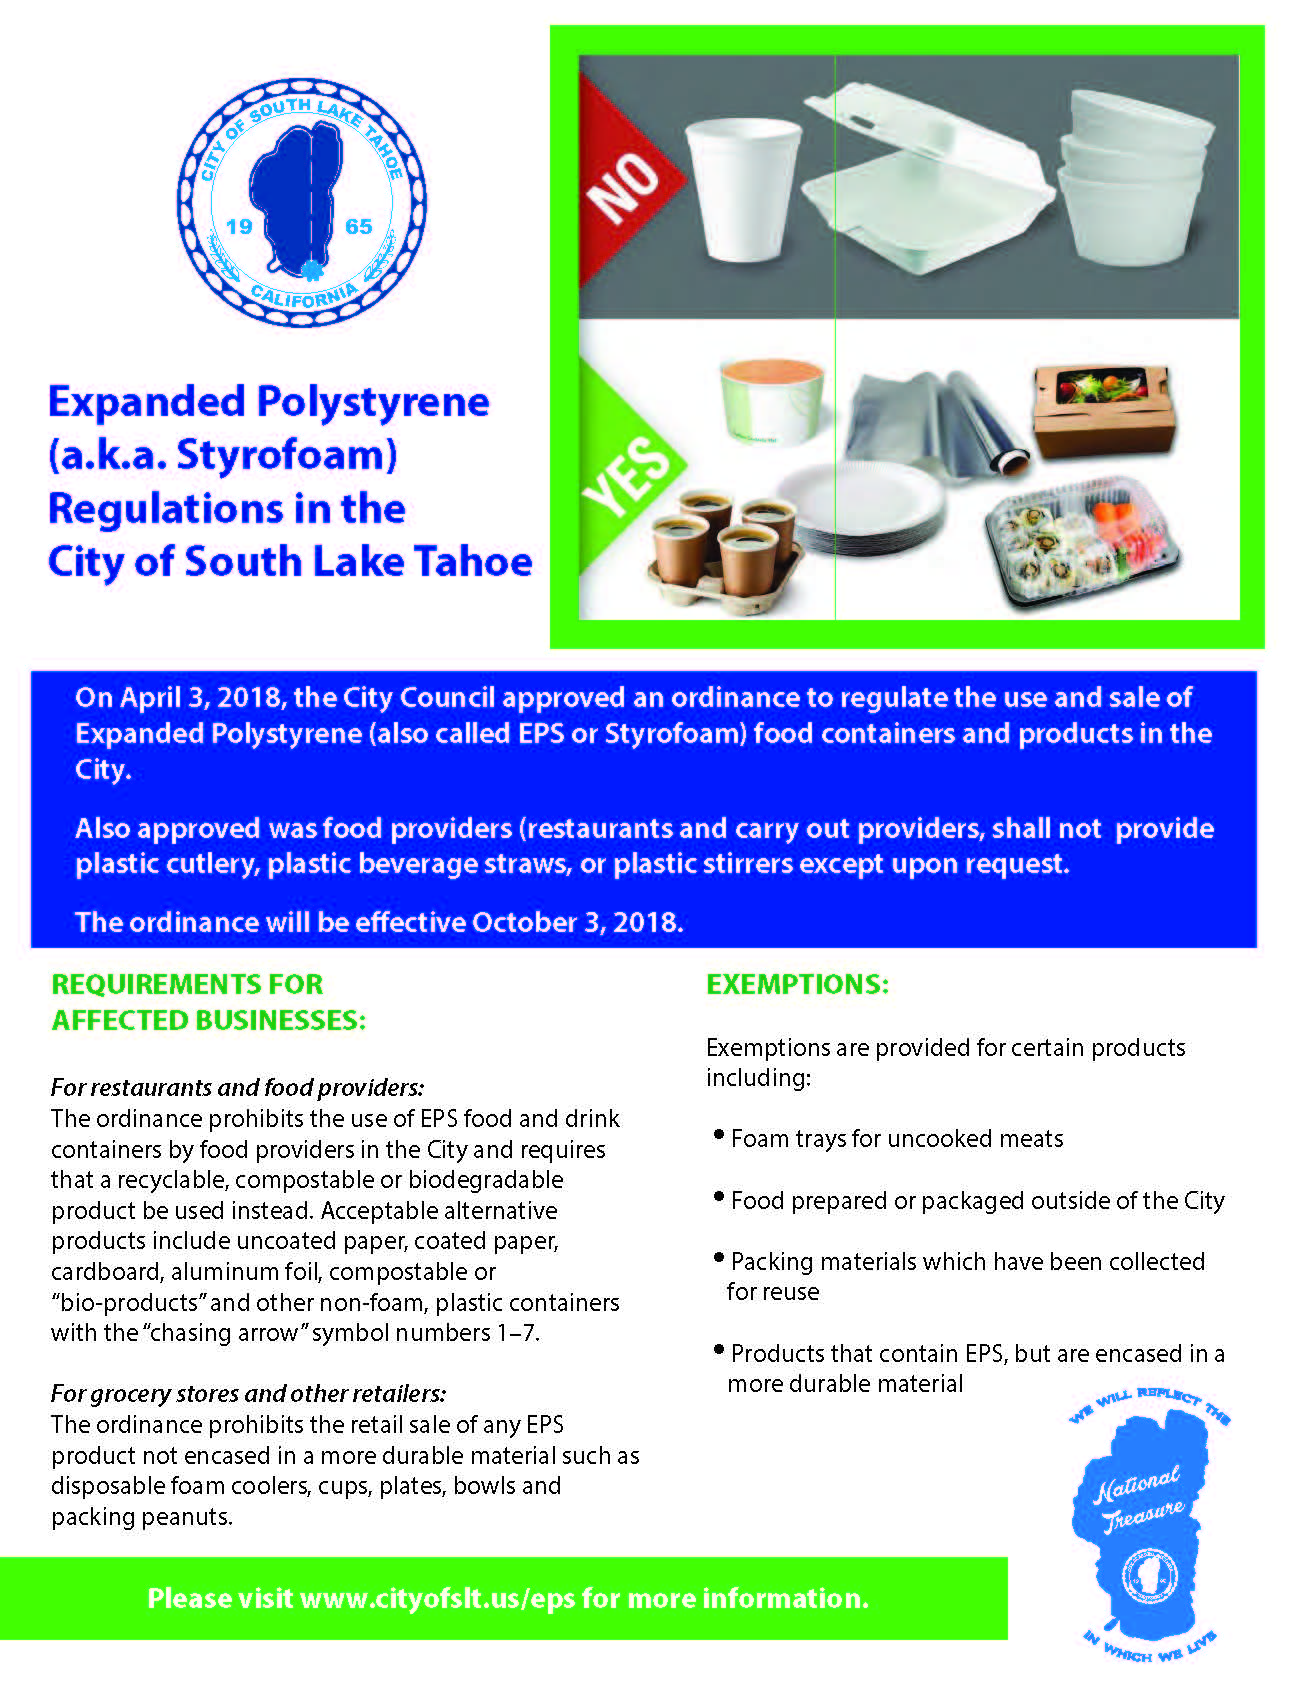 Expanded Polystyrene (EPS) Flyer for Businesses